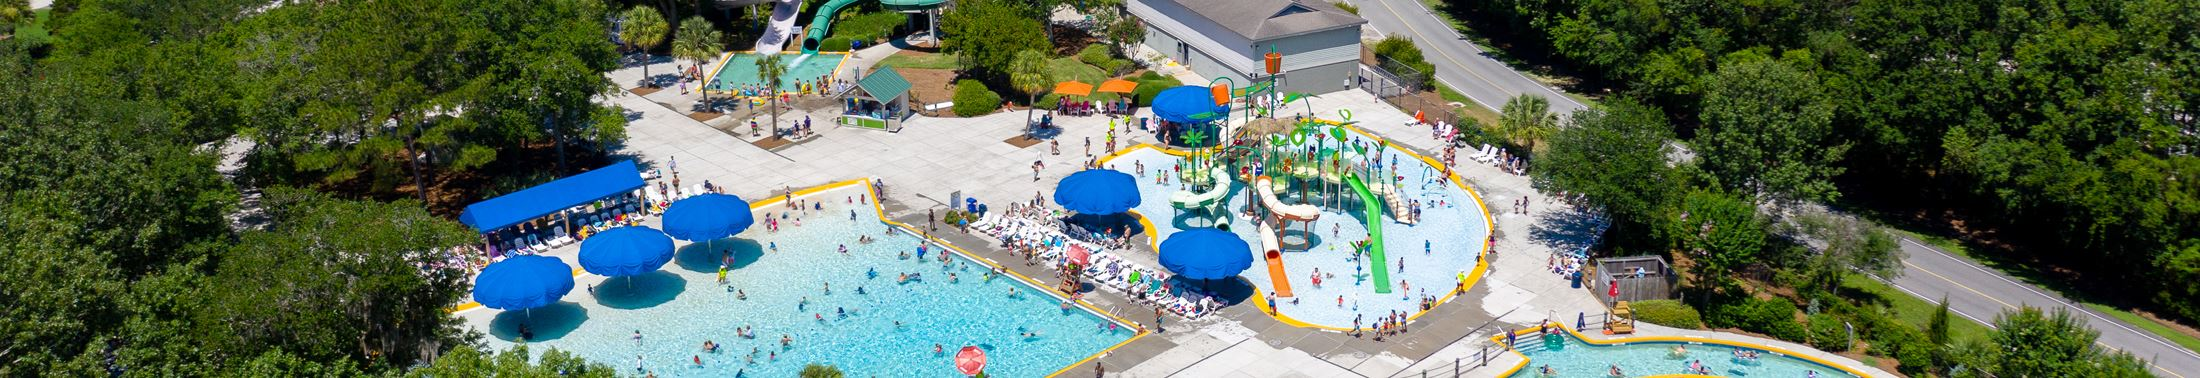 View of the pool and slides at Splash Zone Waterpark